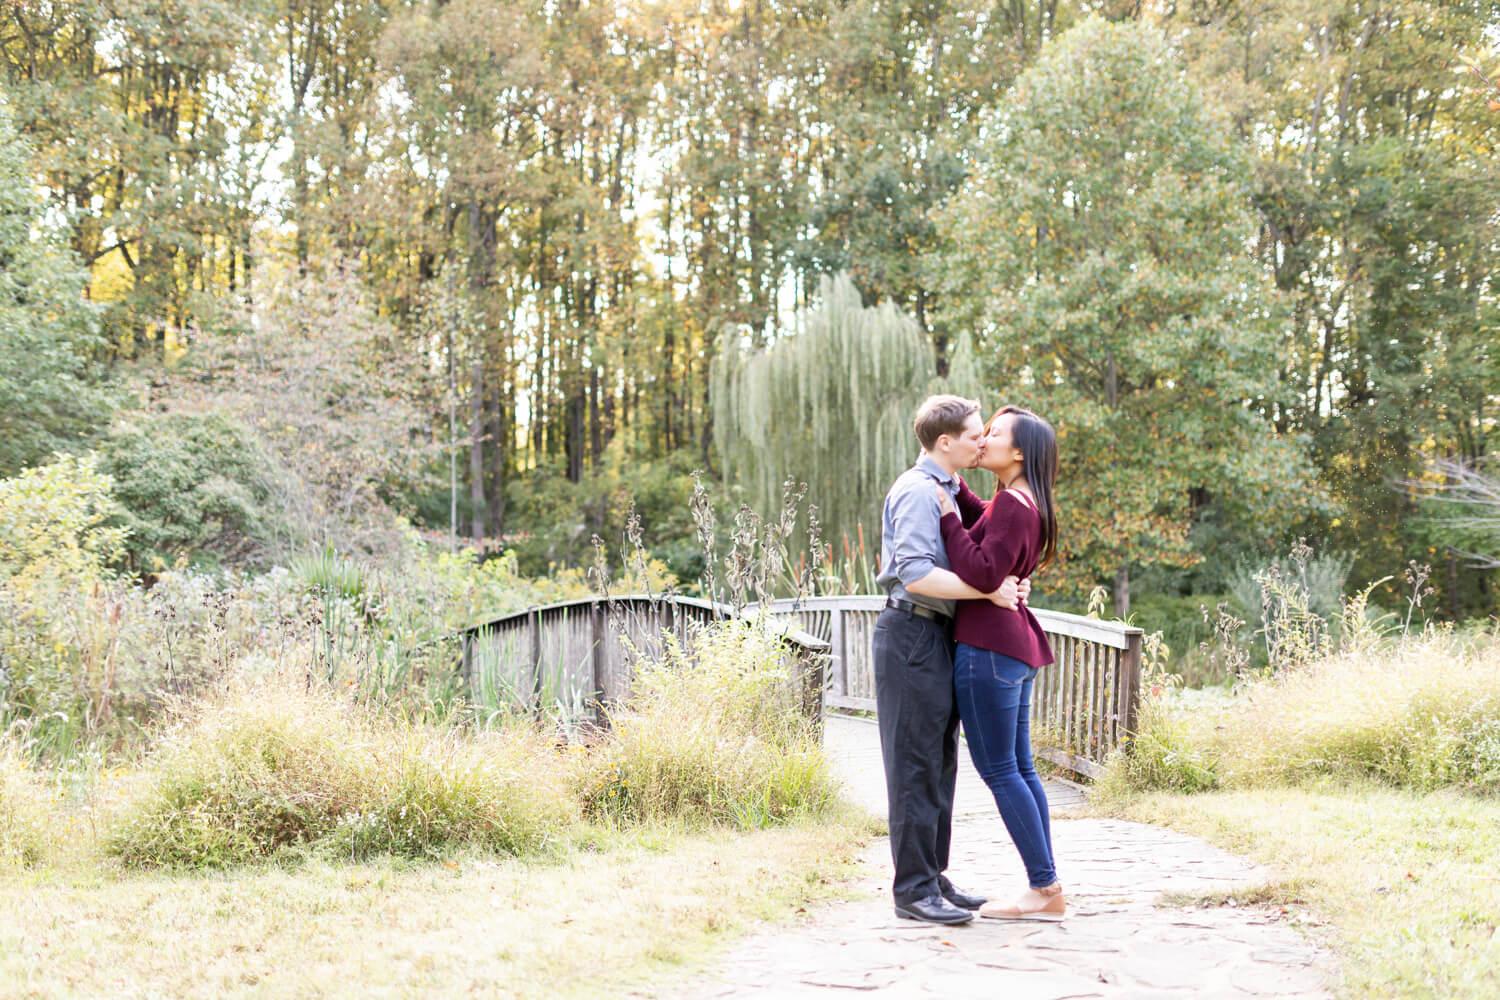 Couple kissing while standing outdoors next to a wooden bridge.